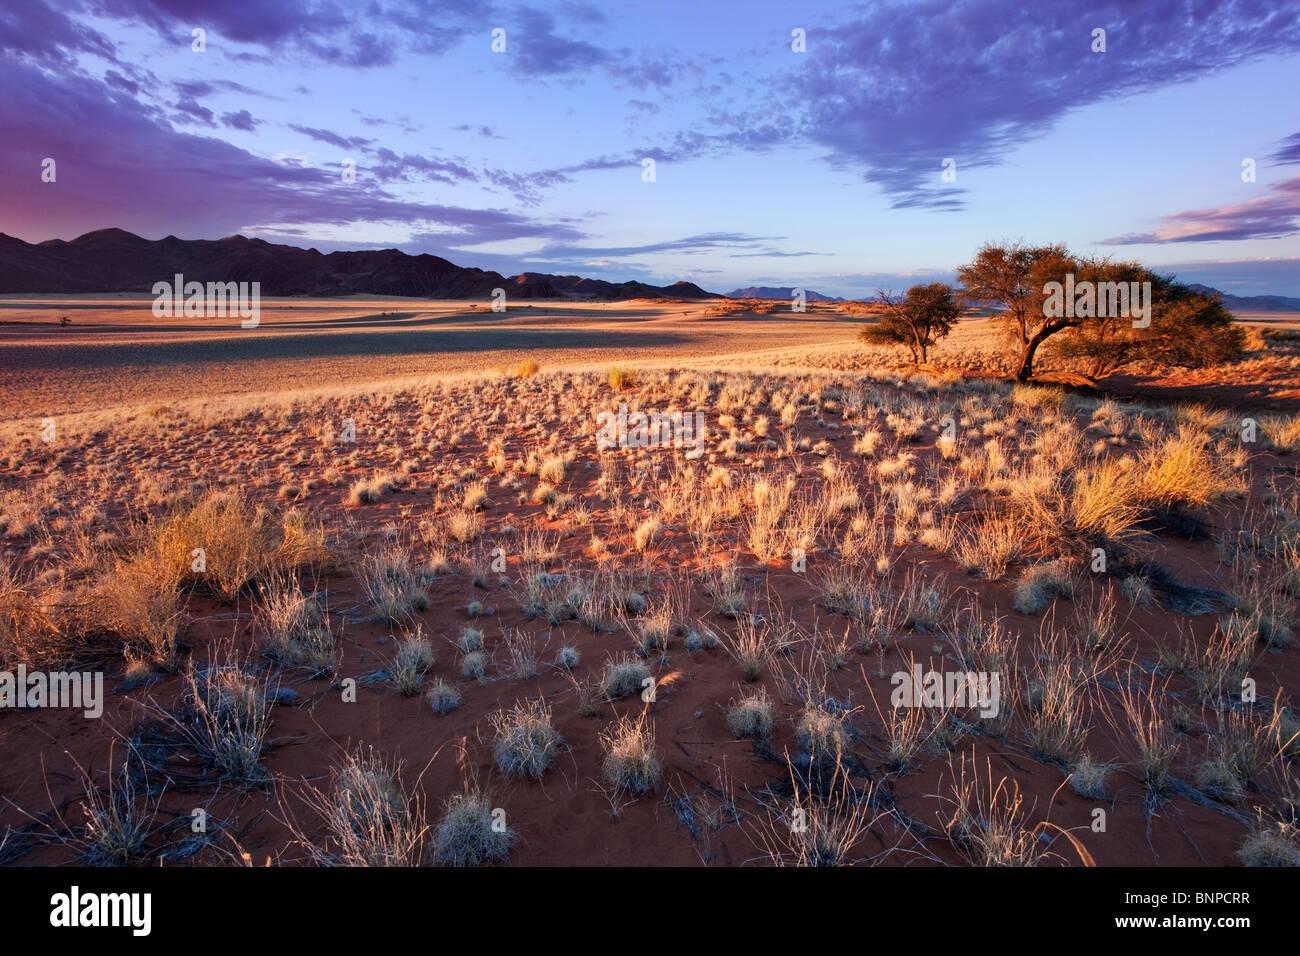 Setting sun lights up unique scenery of south-west Namib desert or pro-Namib. NamibRand Nature Reserve, Namibia Stock Photo